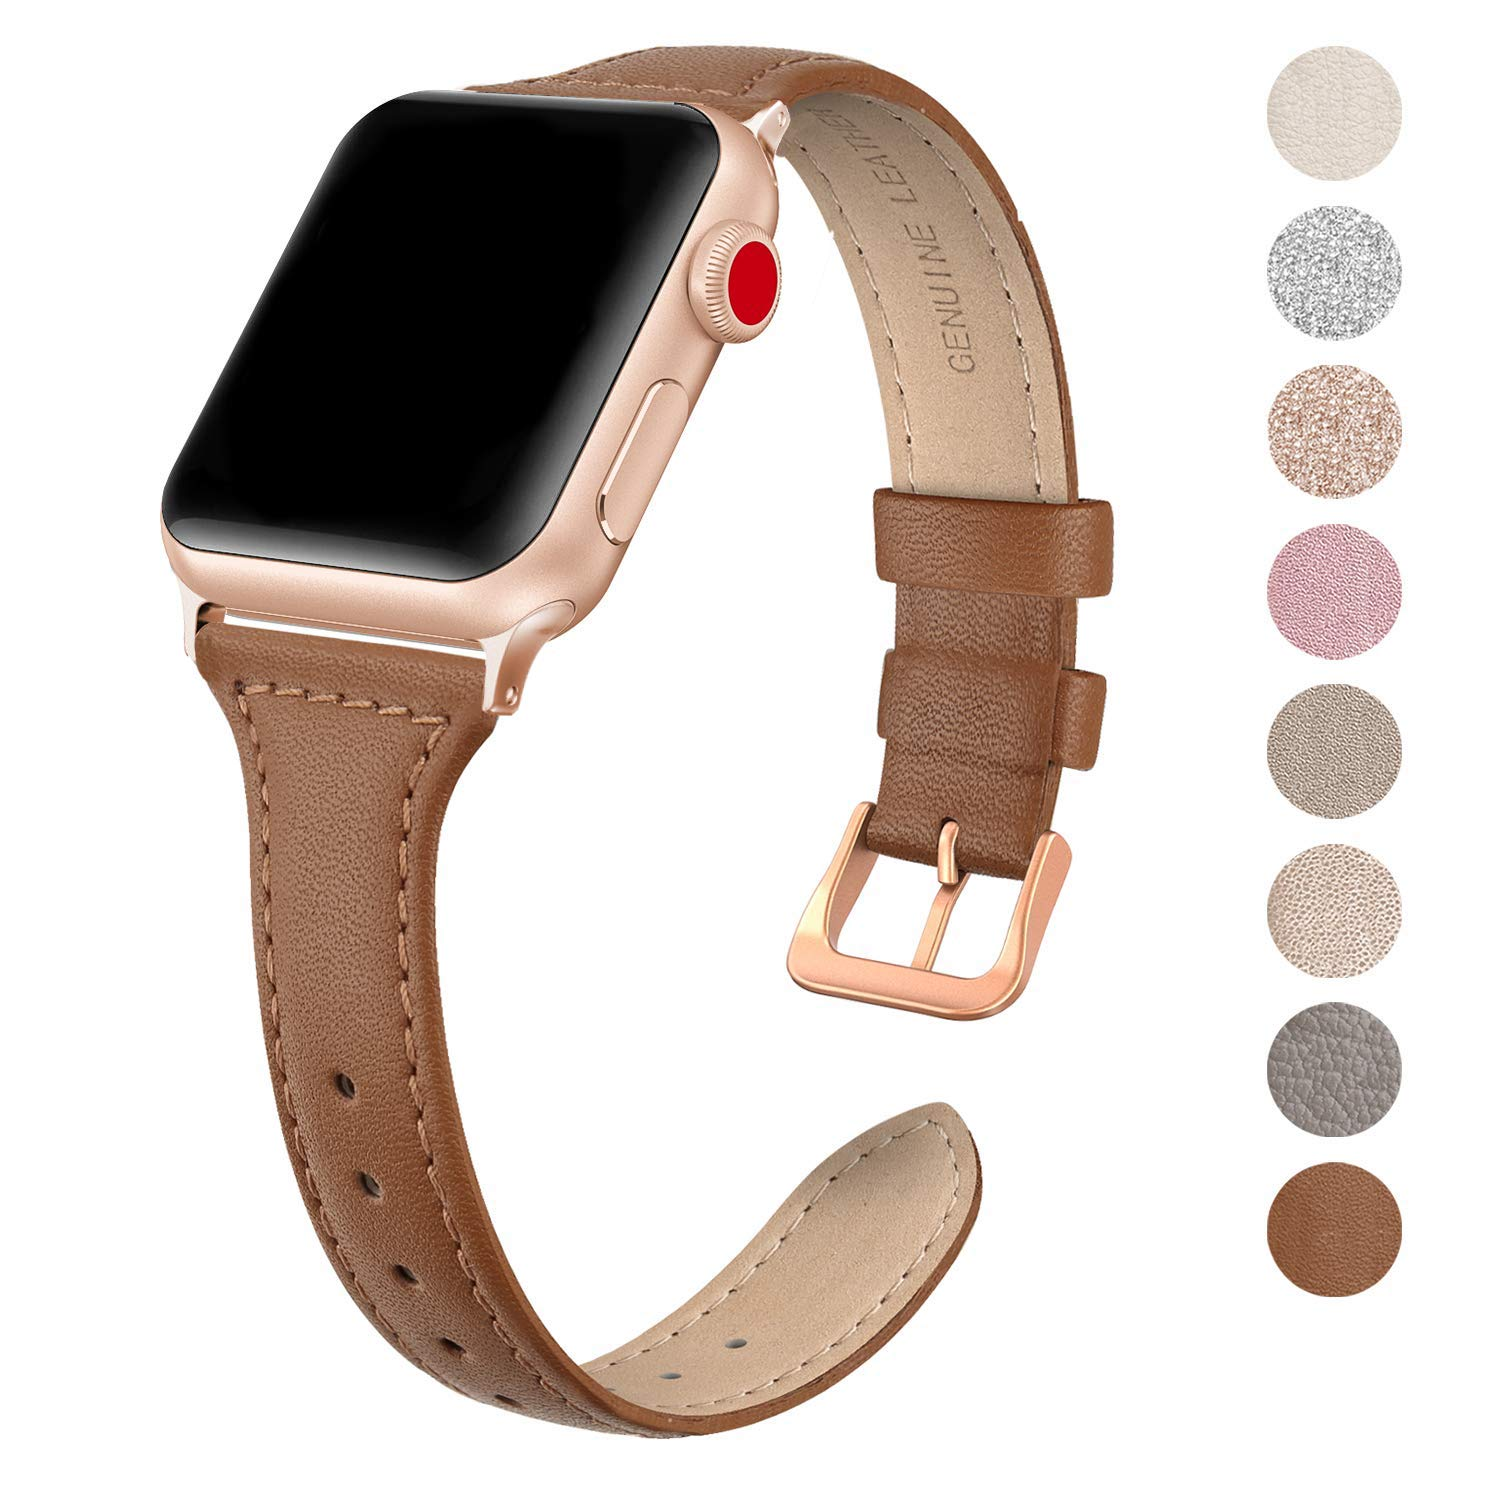 SWEES Leather Band Compatible for Apple Watch iWatch 38mm 40mm, Slim Thin Dressy Elegant Genuine Leather Strap Compatible iWatch Series 4 Series 3 Series 2 Series 1 Sport Edition Women, Brown by SWEES